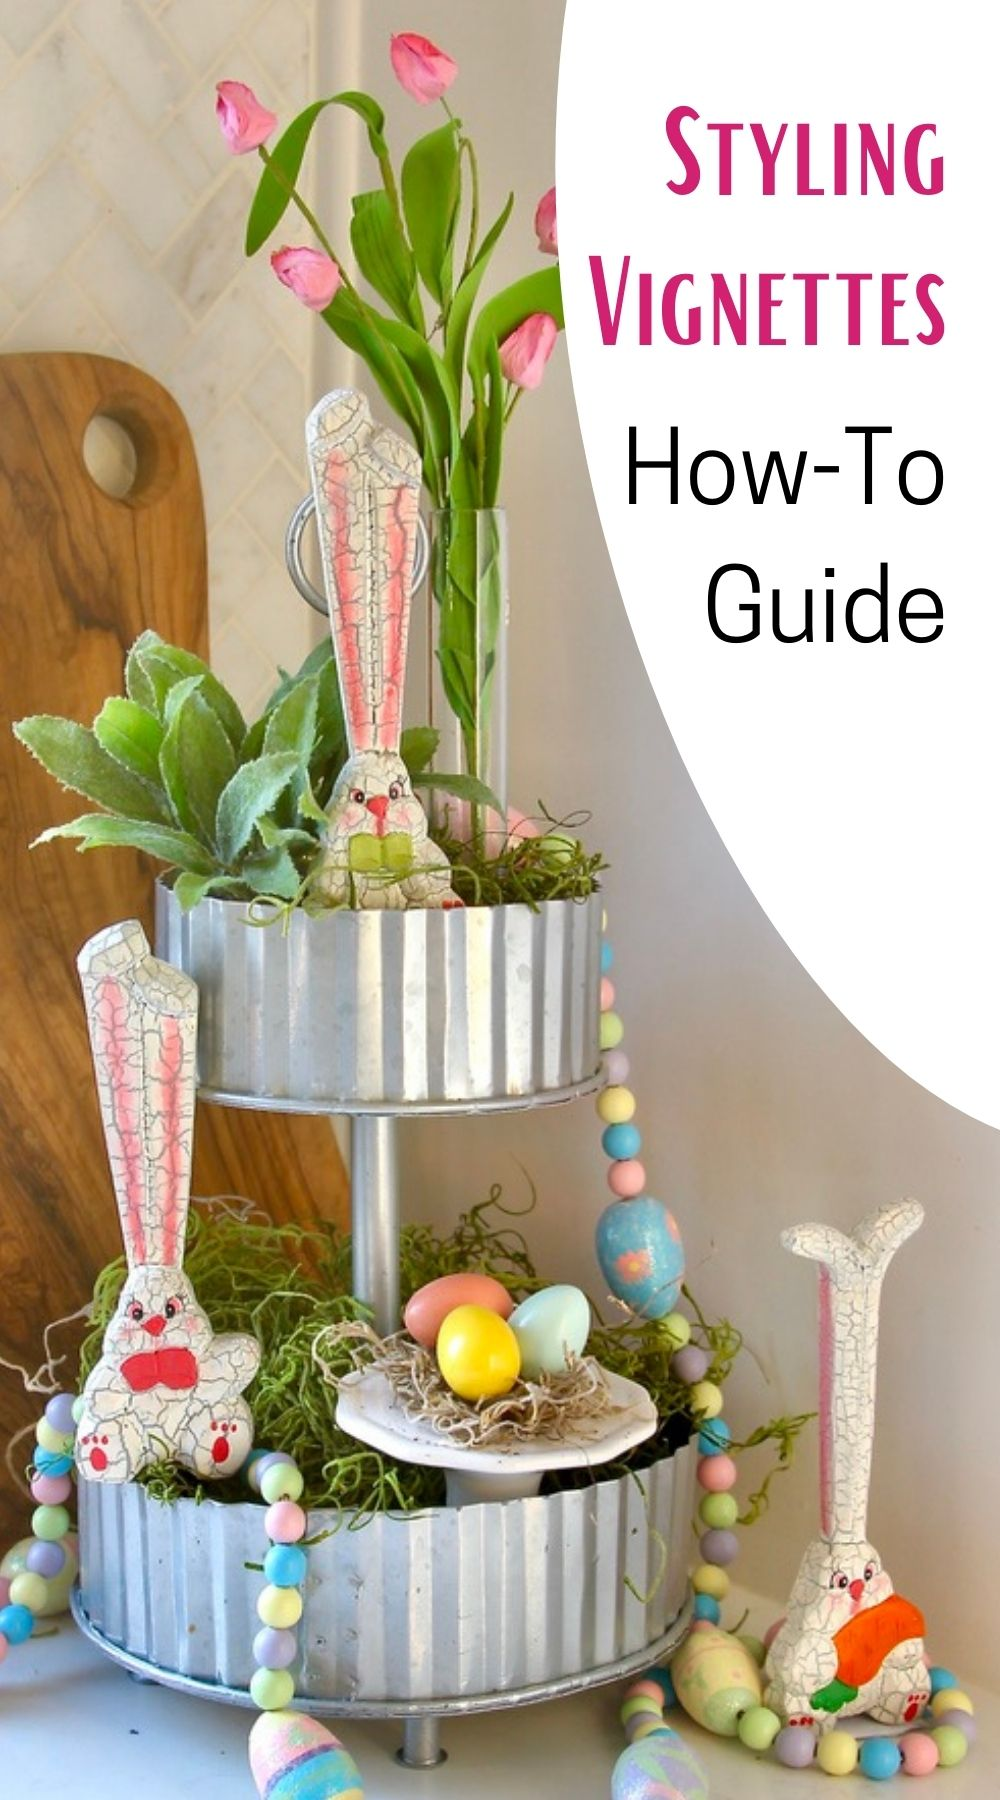 Pin showing the final display with a title reading Styling Vignettes: How-To Guide